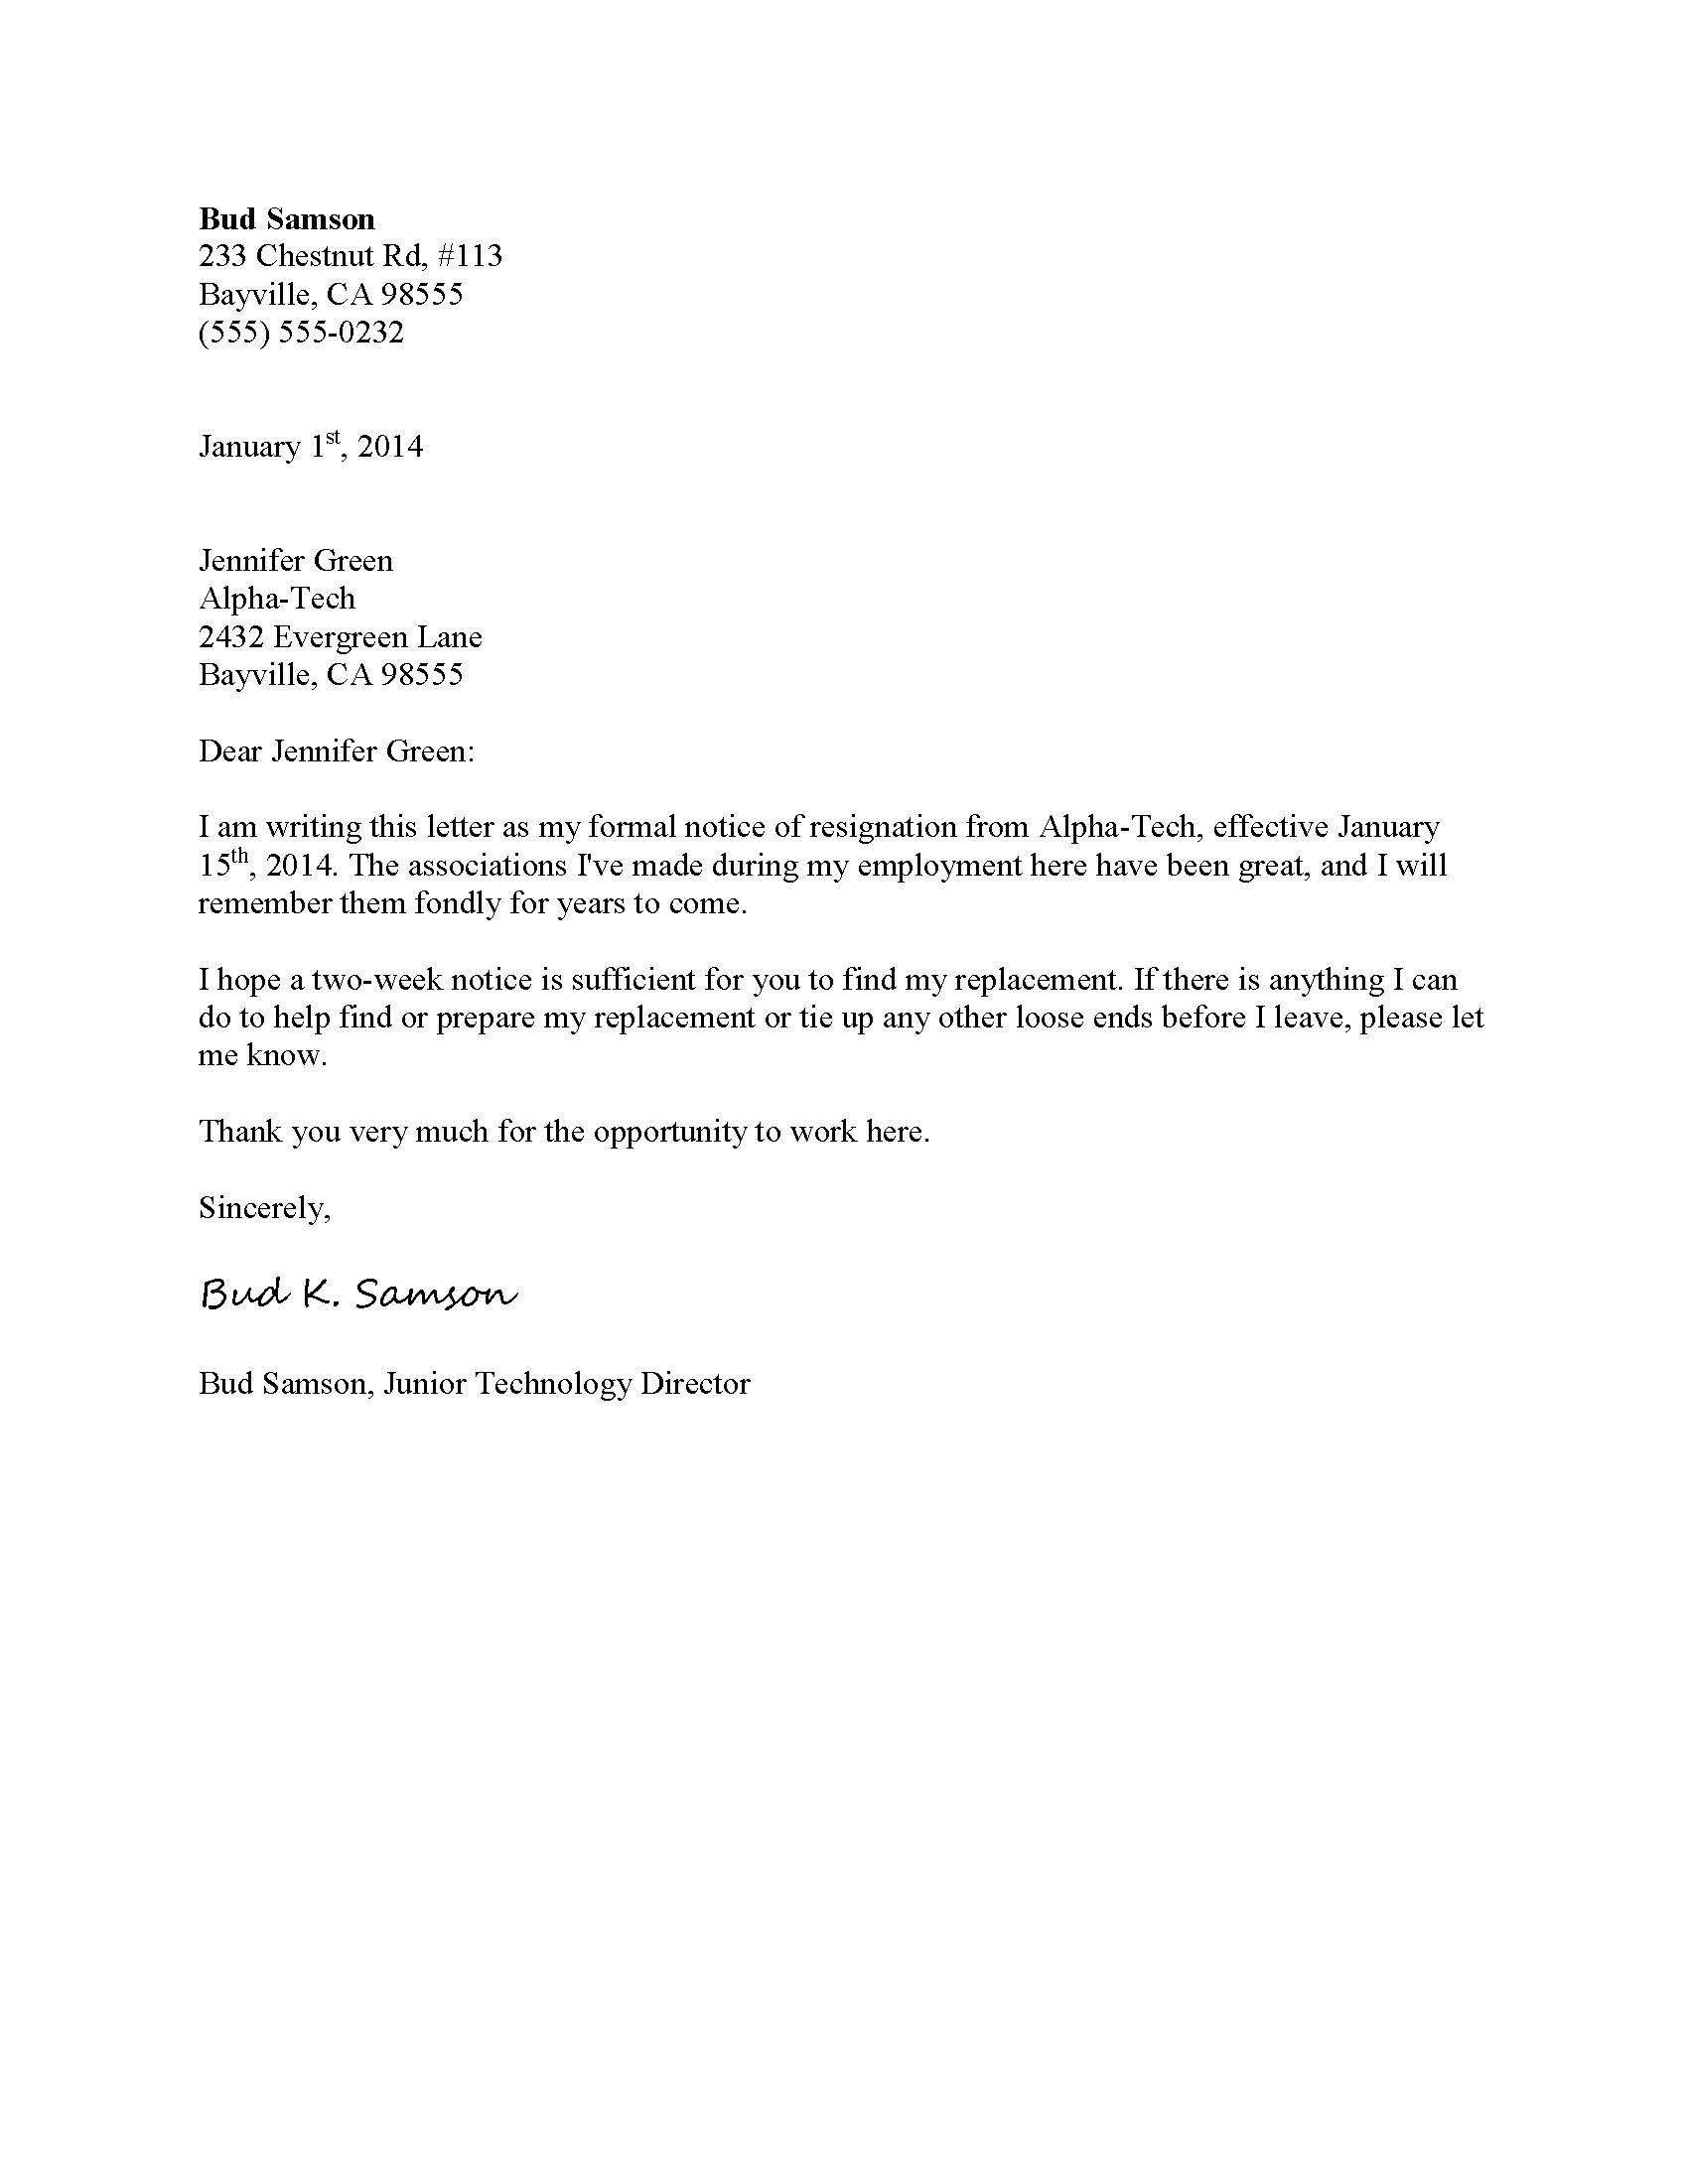 Sample Formal Resignation Letter Template For Quitting Your Job